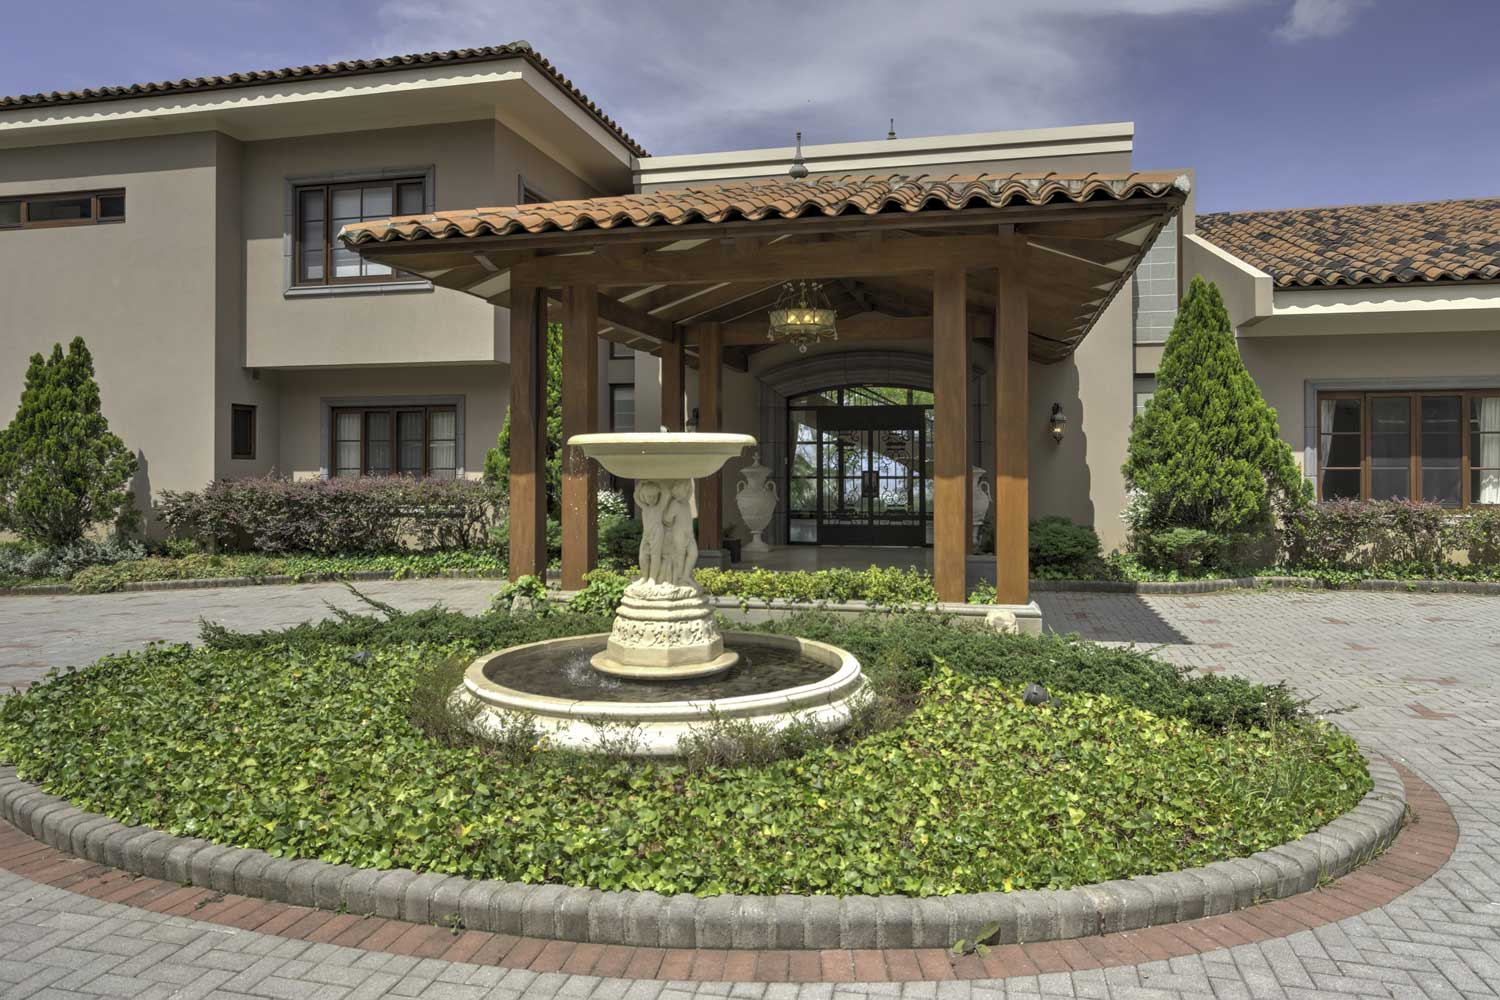 <b>San Jose, Costa Rica</b><br/><i>11 Bedrooms, 15,911 sq. ft.</i><br/>Palatial private estate with breathtaking skyline views